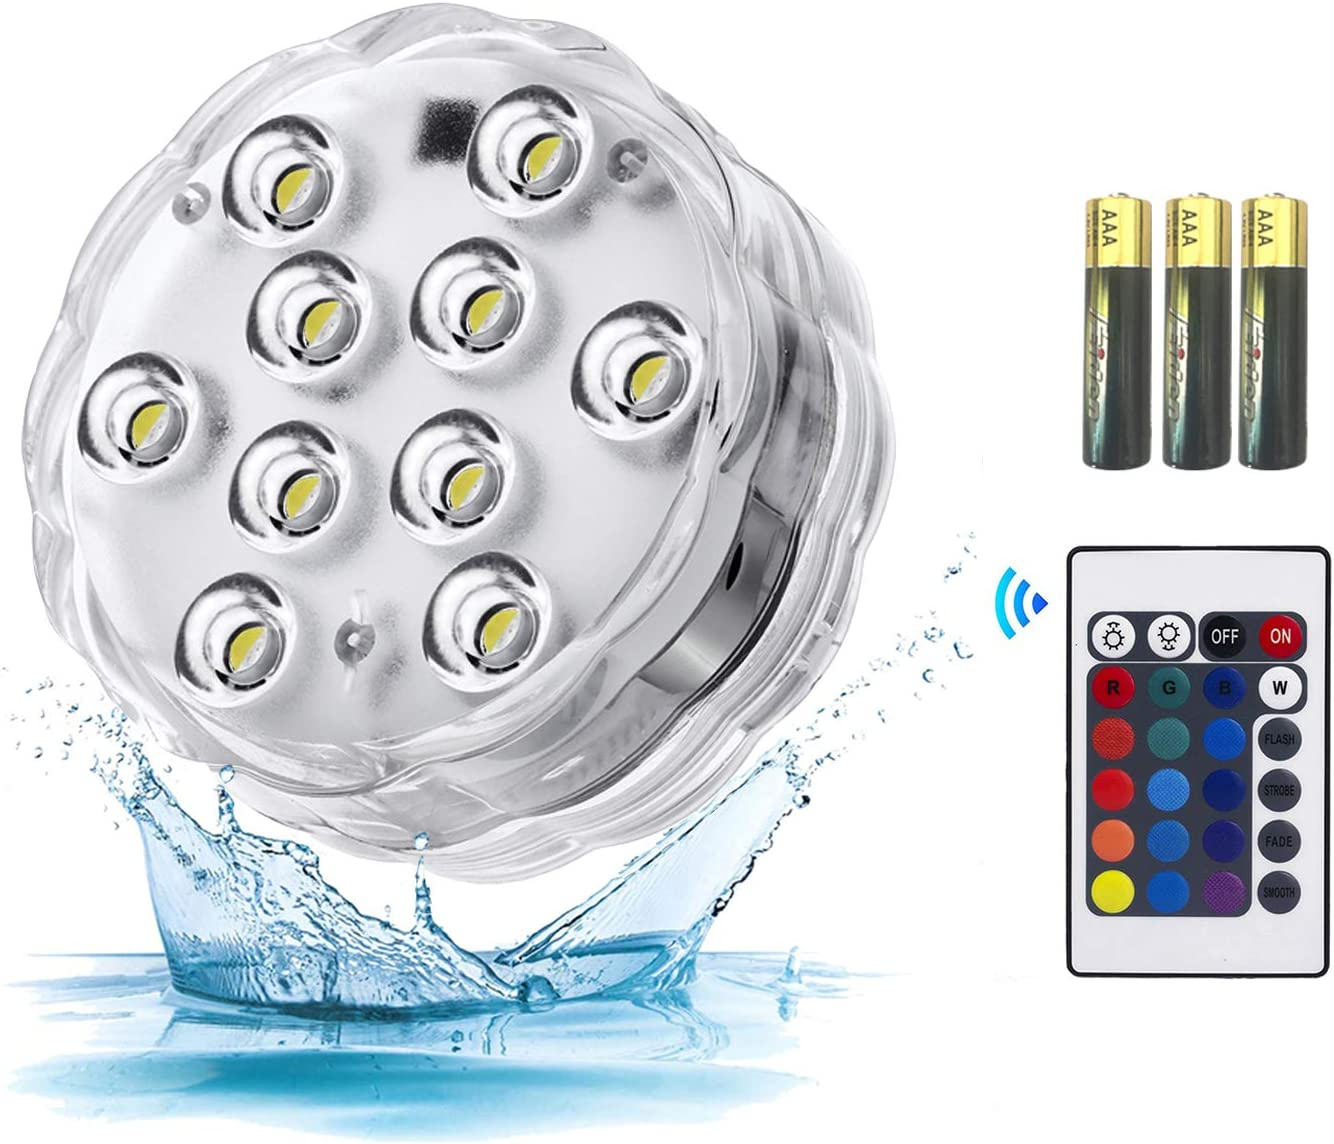 Submersible Led Lights - Waterproof Underwater Lights with IR Remote,16 Color Changing Battery Operated Tea Lights for Pumpkins,Hot Tub,Aquarium,Pool,Wedding,Christmas Party and Halloween Decor 1pack